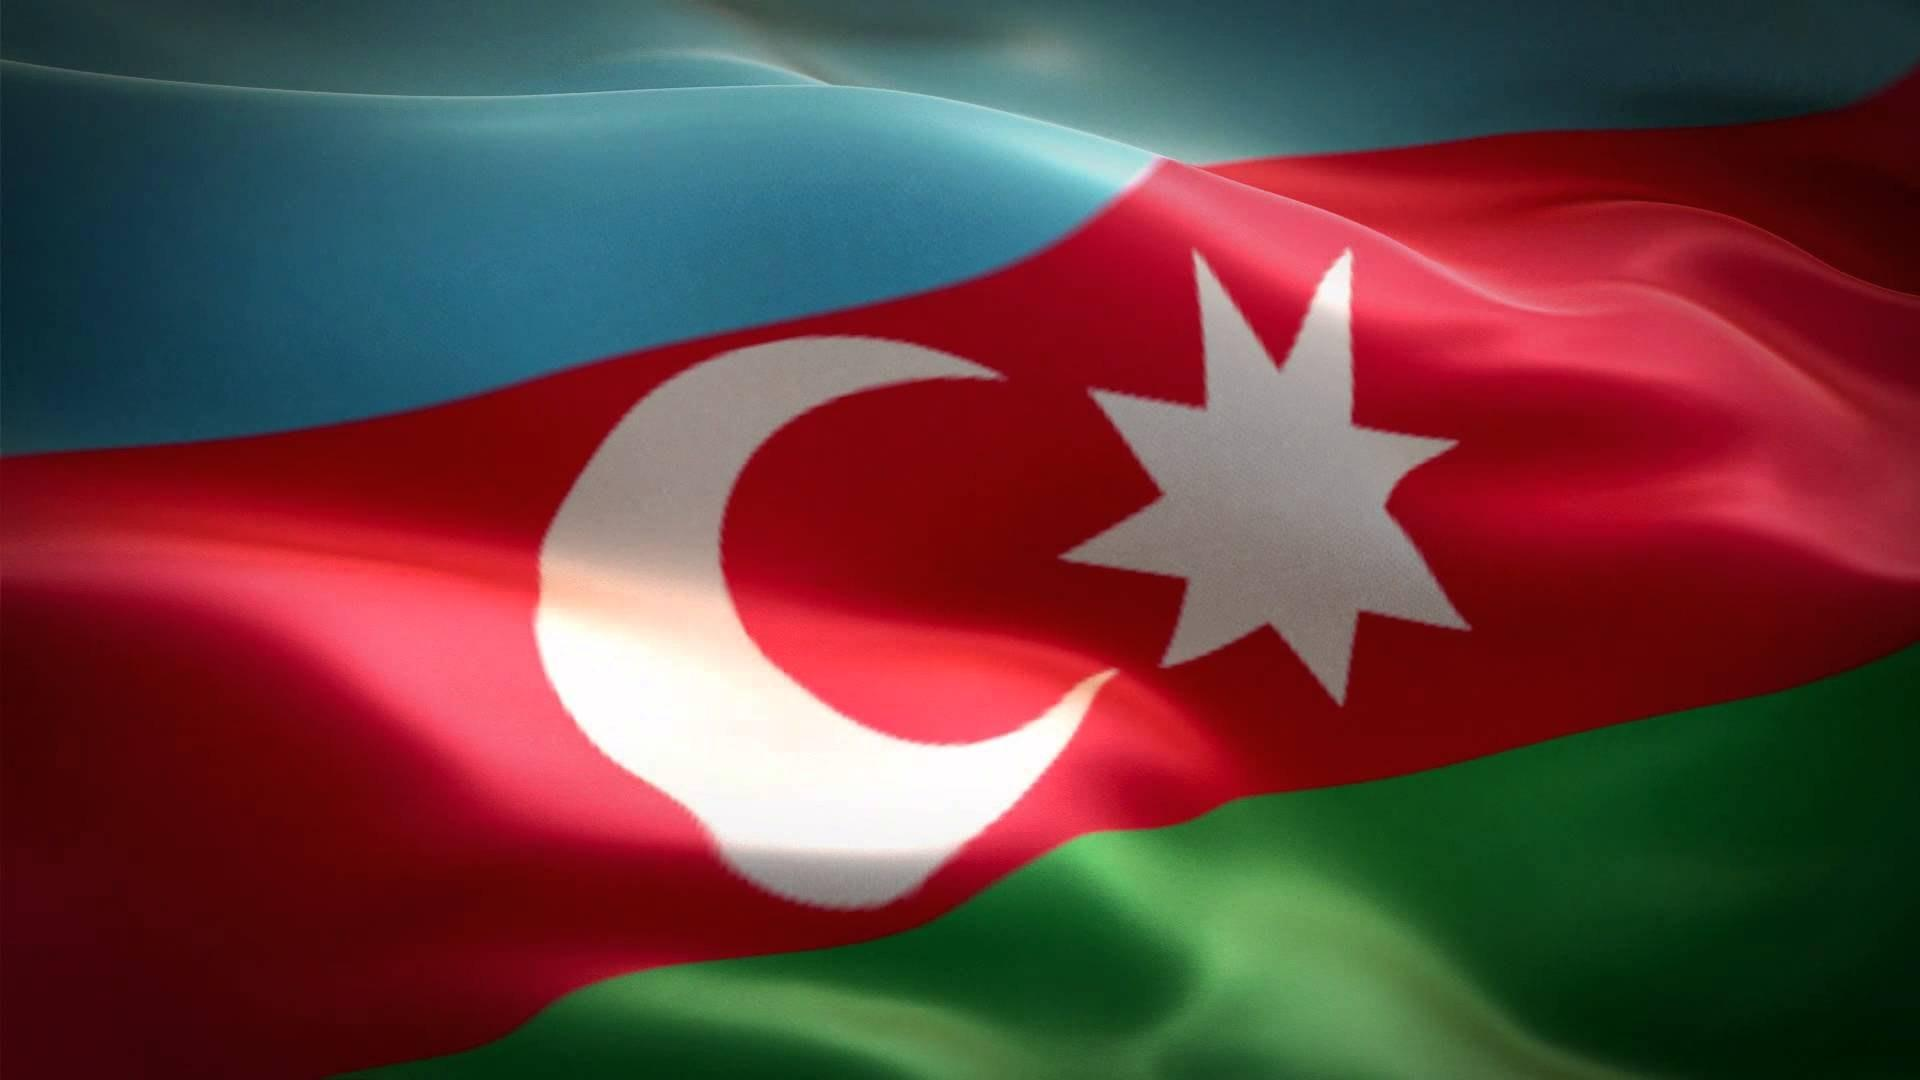 Free stock photo of Azerbaijan